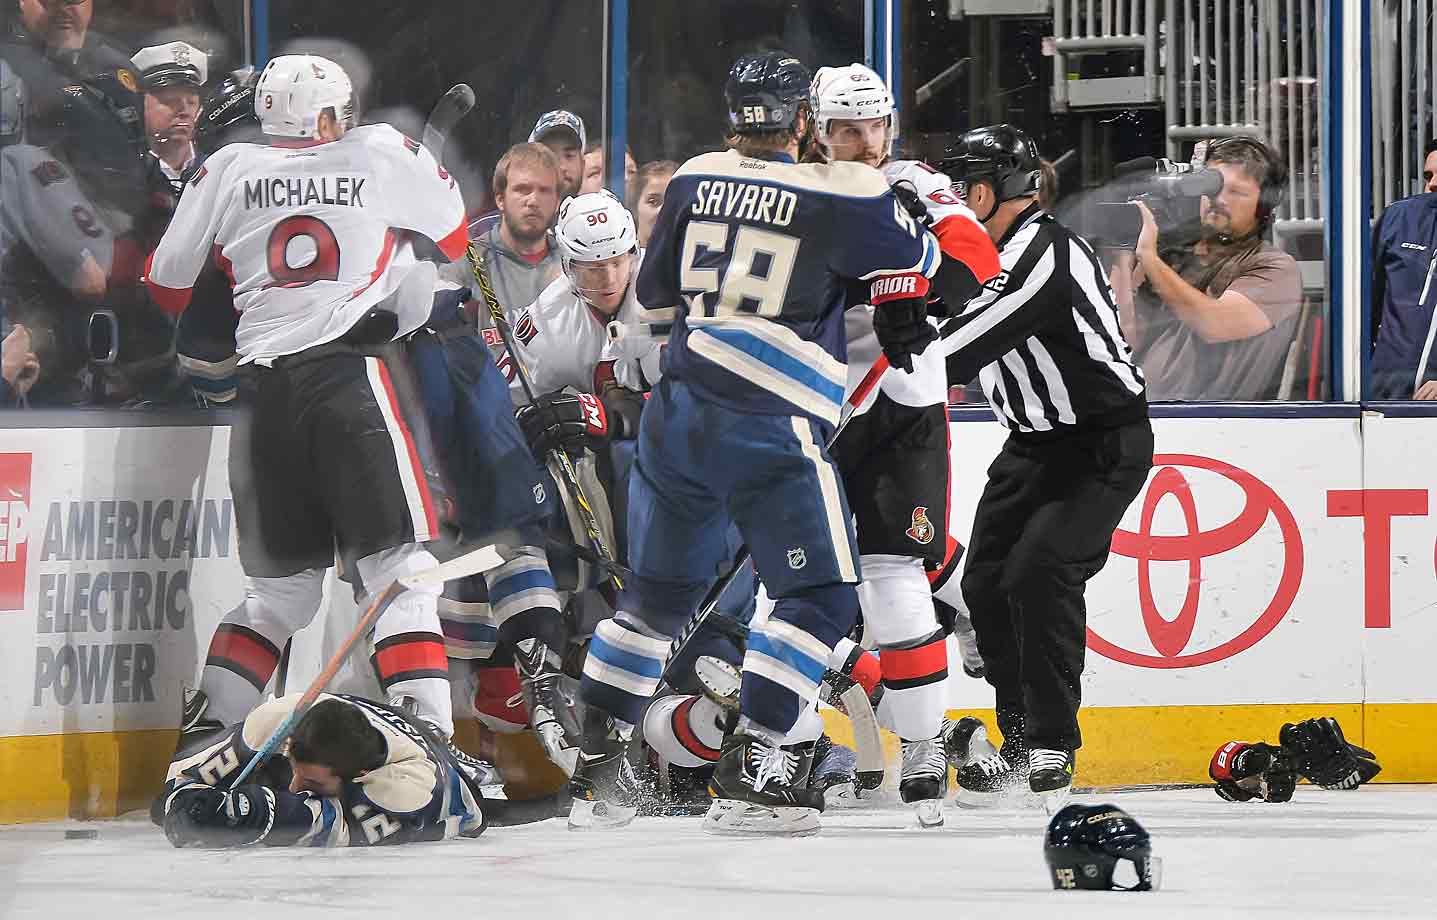 The teams exchanged pleasantries at Nationwide Arena in Columbus after Blue Jackets defenseman Artem Anisimov was sent to the ice by a head shot during their game on Oct. 28, 2014.